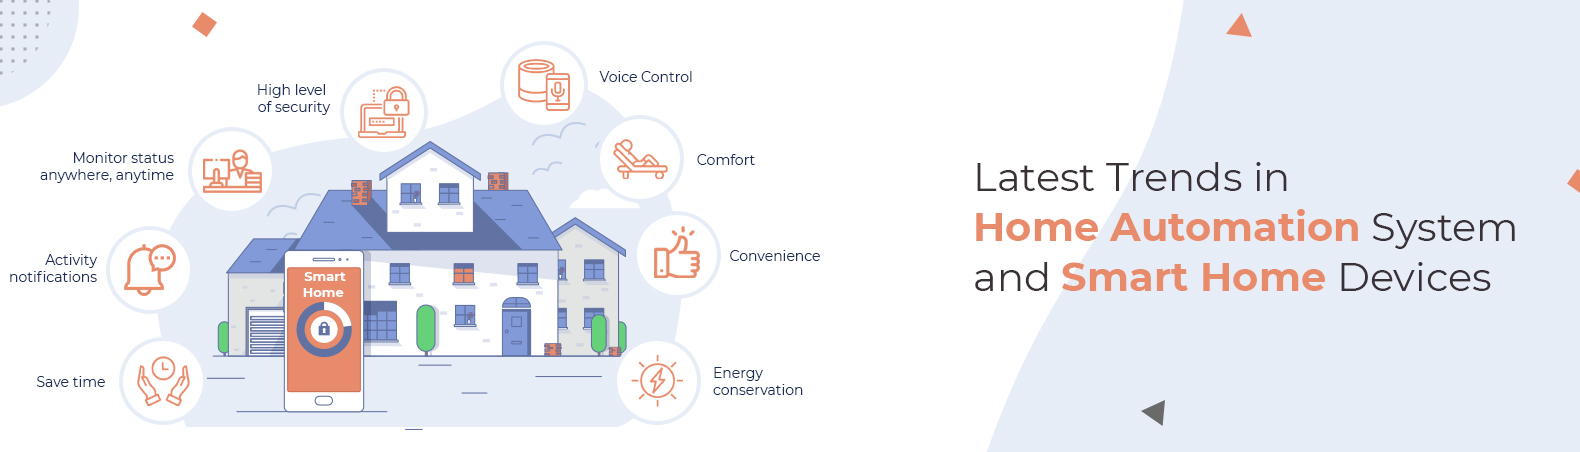 Latest Trends in Smart Home Automation System and Smart Home Devices